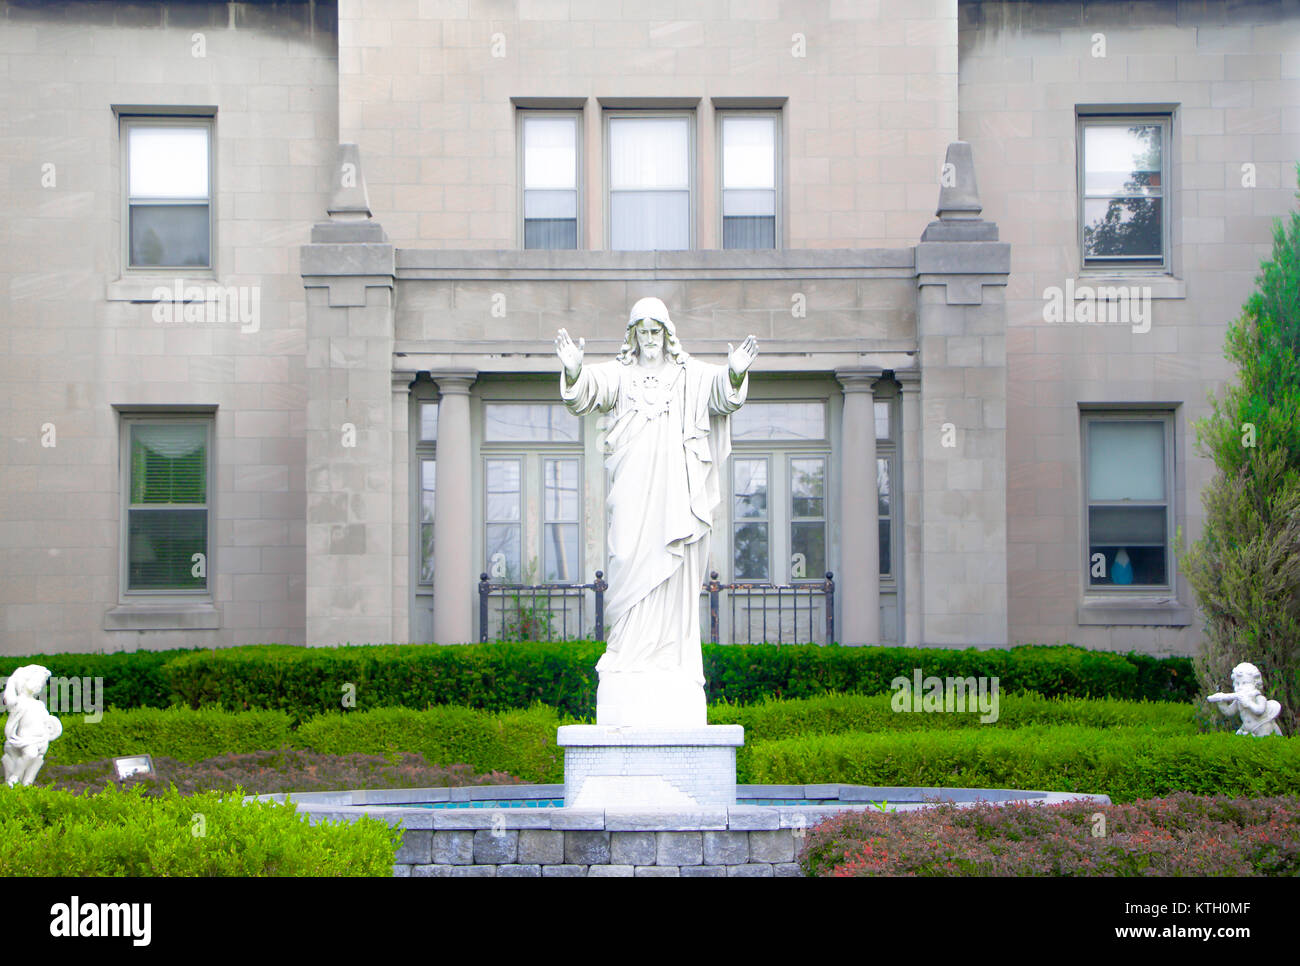 Exterior daytime marble statue of Jesus Christ in courtyard of Church of St. Stanislaus named for Stanislaus of - Stock Image